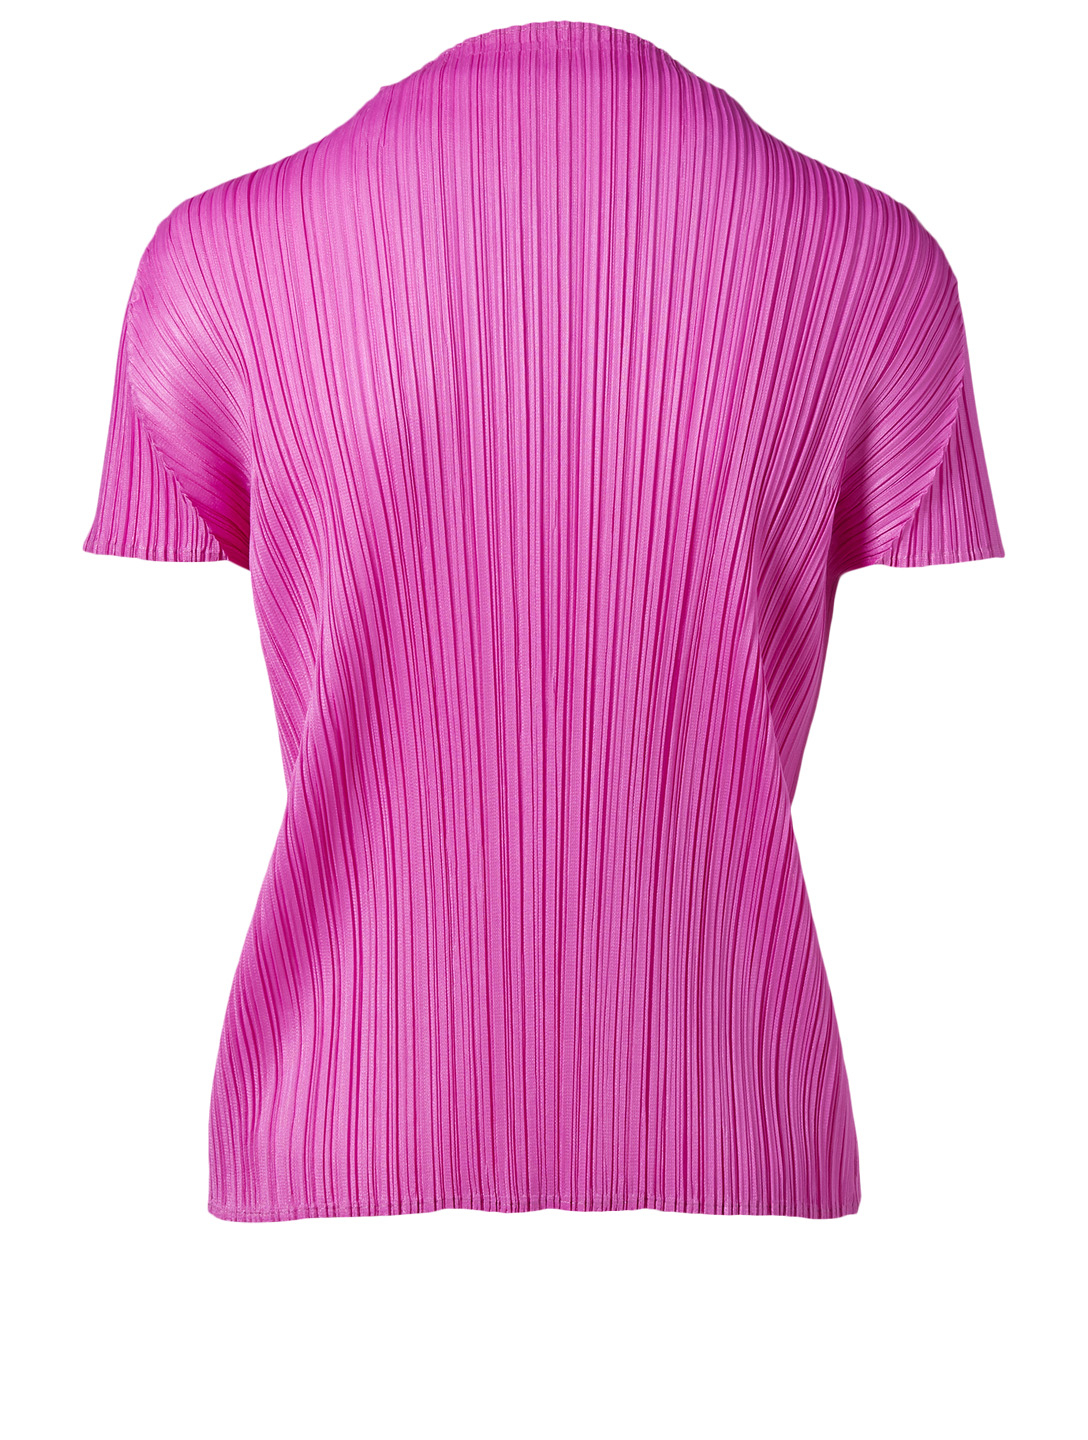 PLEATS PLEASE ISSEY MIYAKE Monthly Colours March Pleated Top Women's Pink